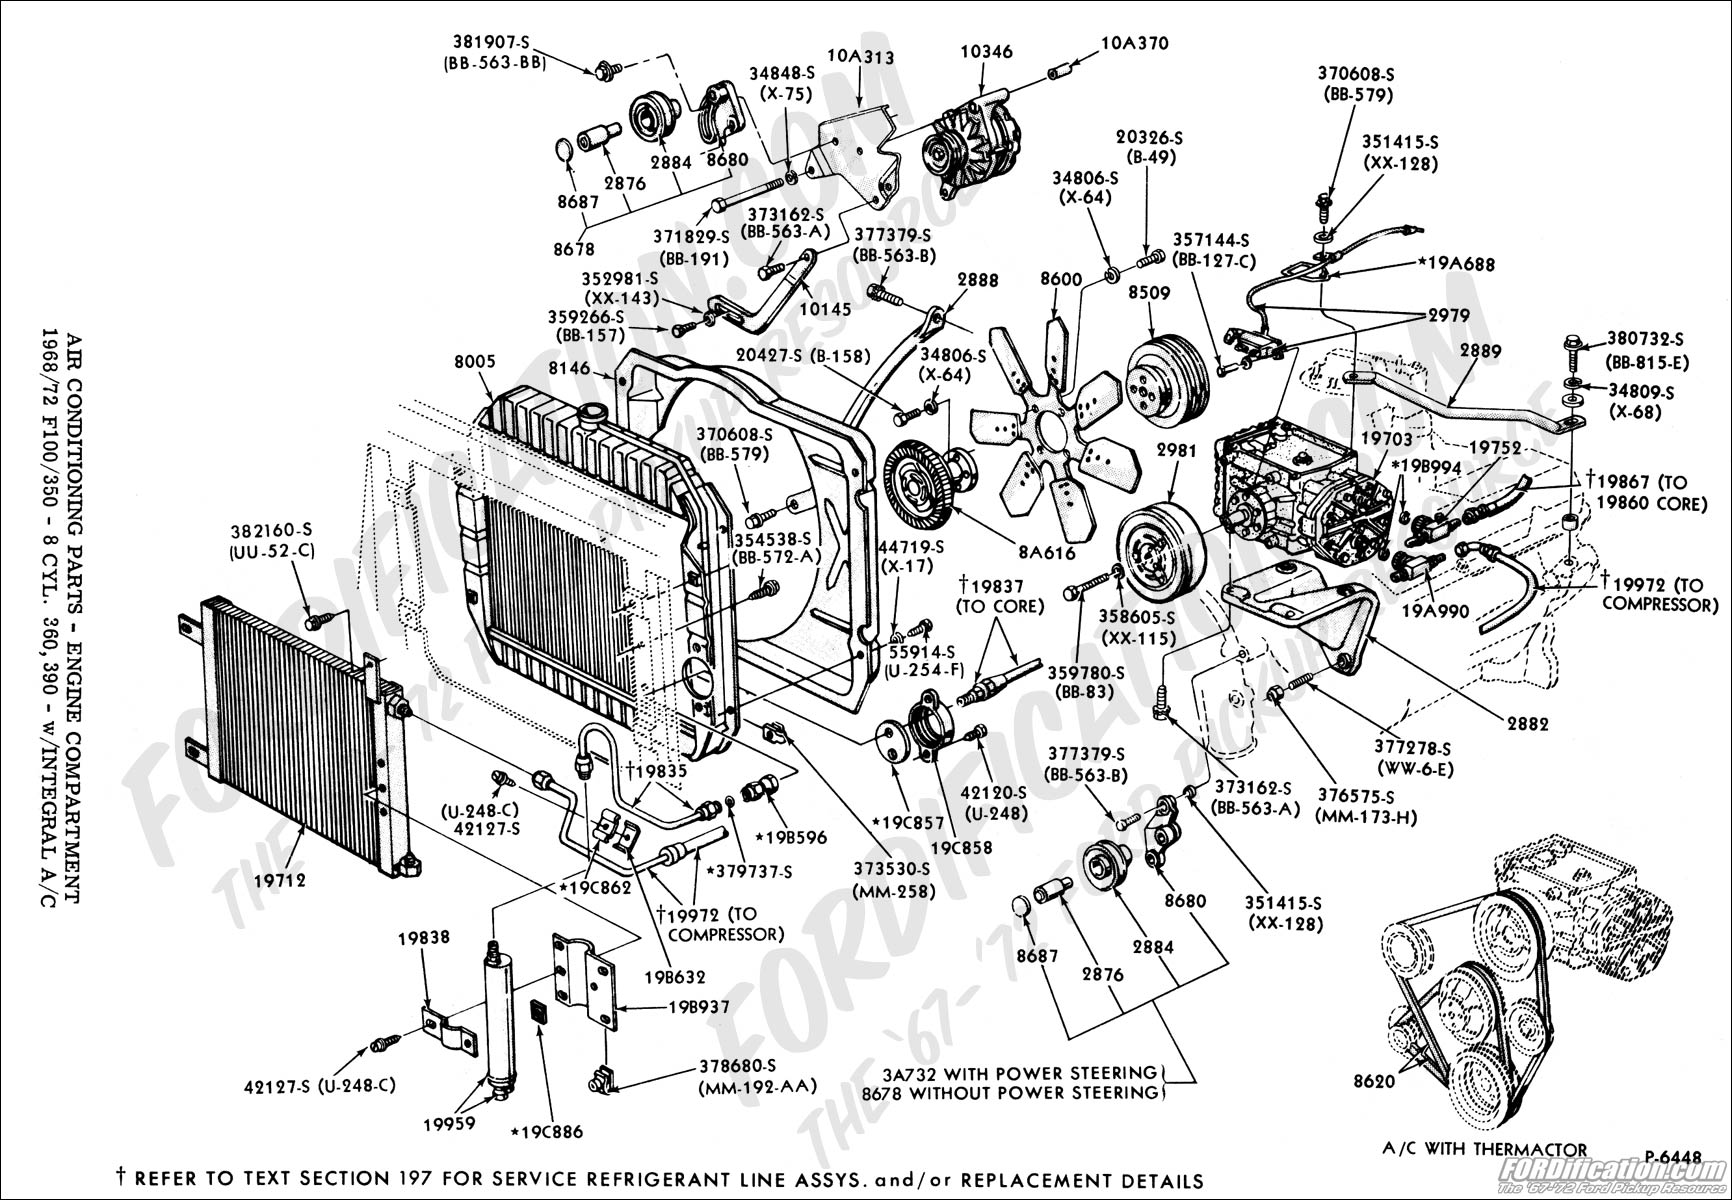 Ford Truck Technical Drawings and Schematics - Section F -  Heating/Cooling/Air-Conditioning